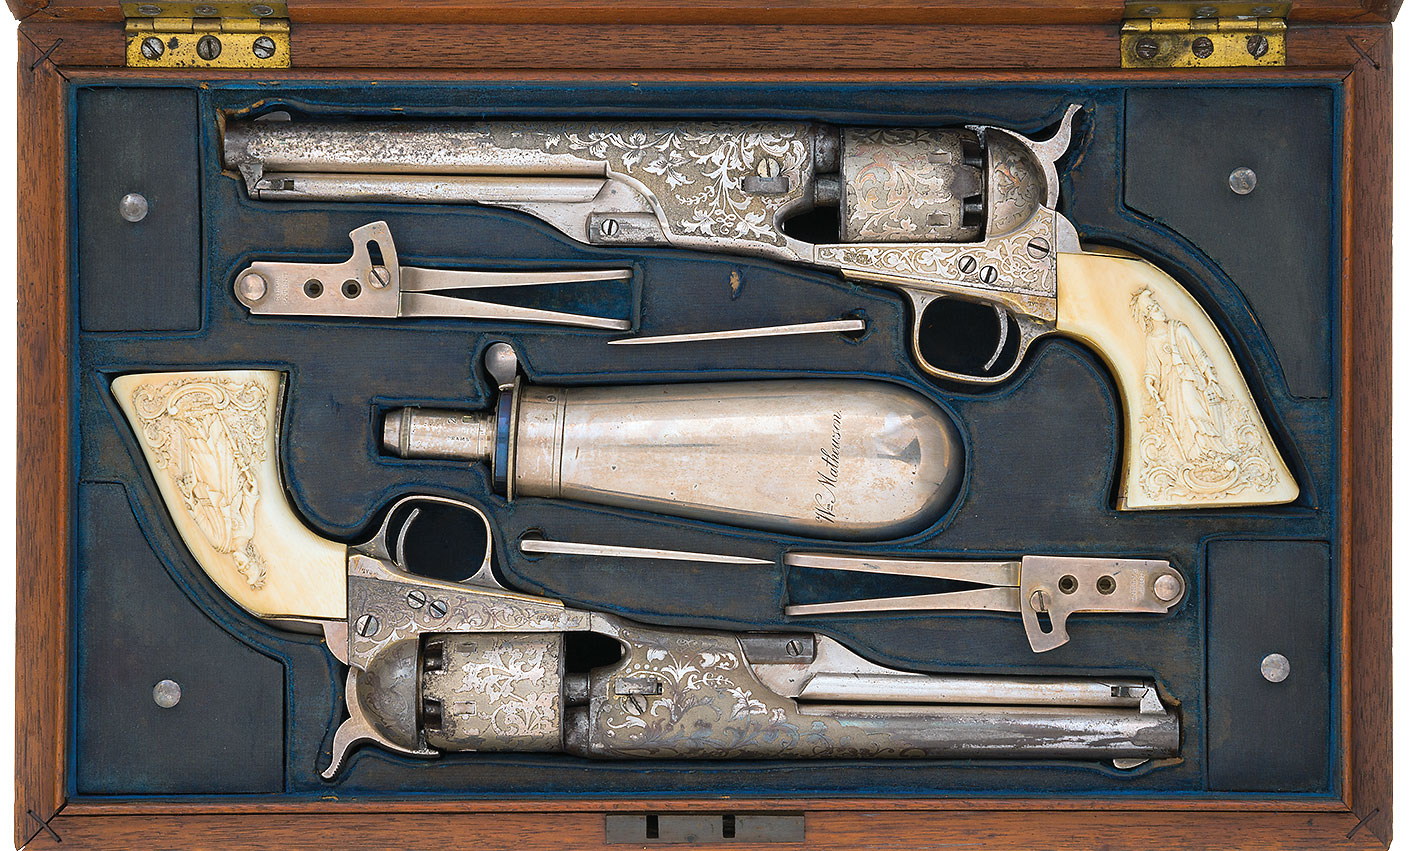 tiffany silver gun set william mathewson true west magazine